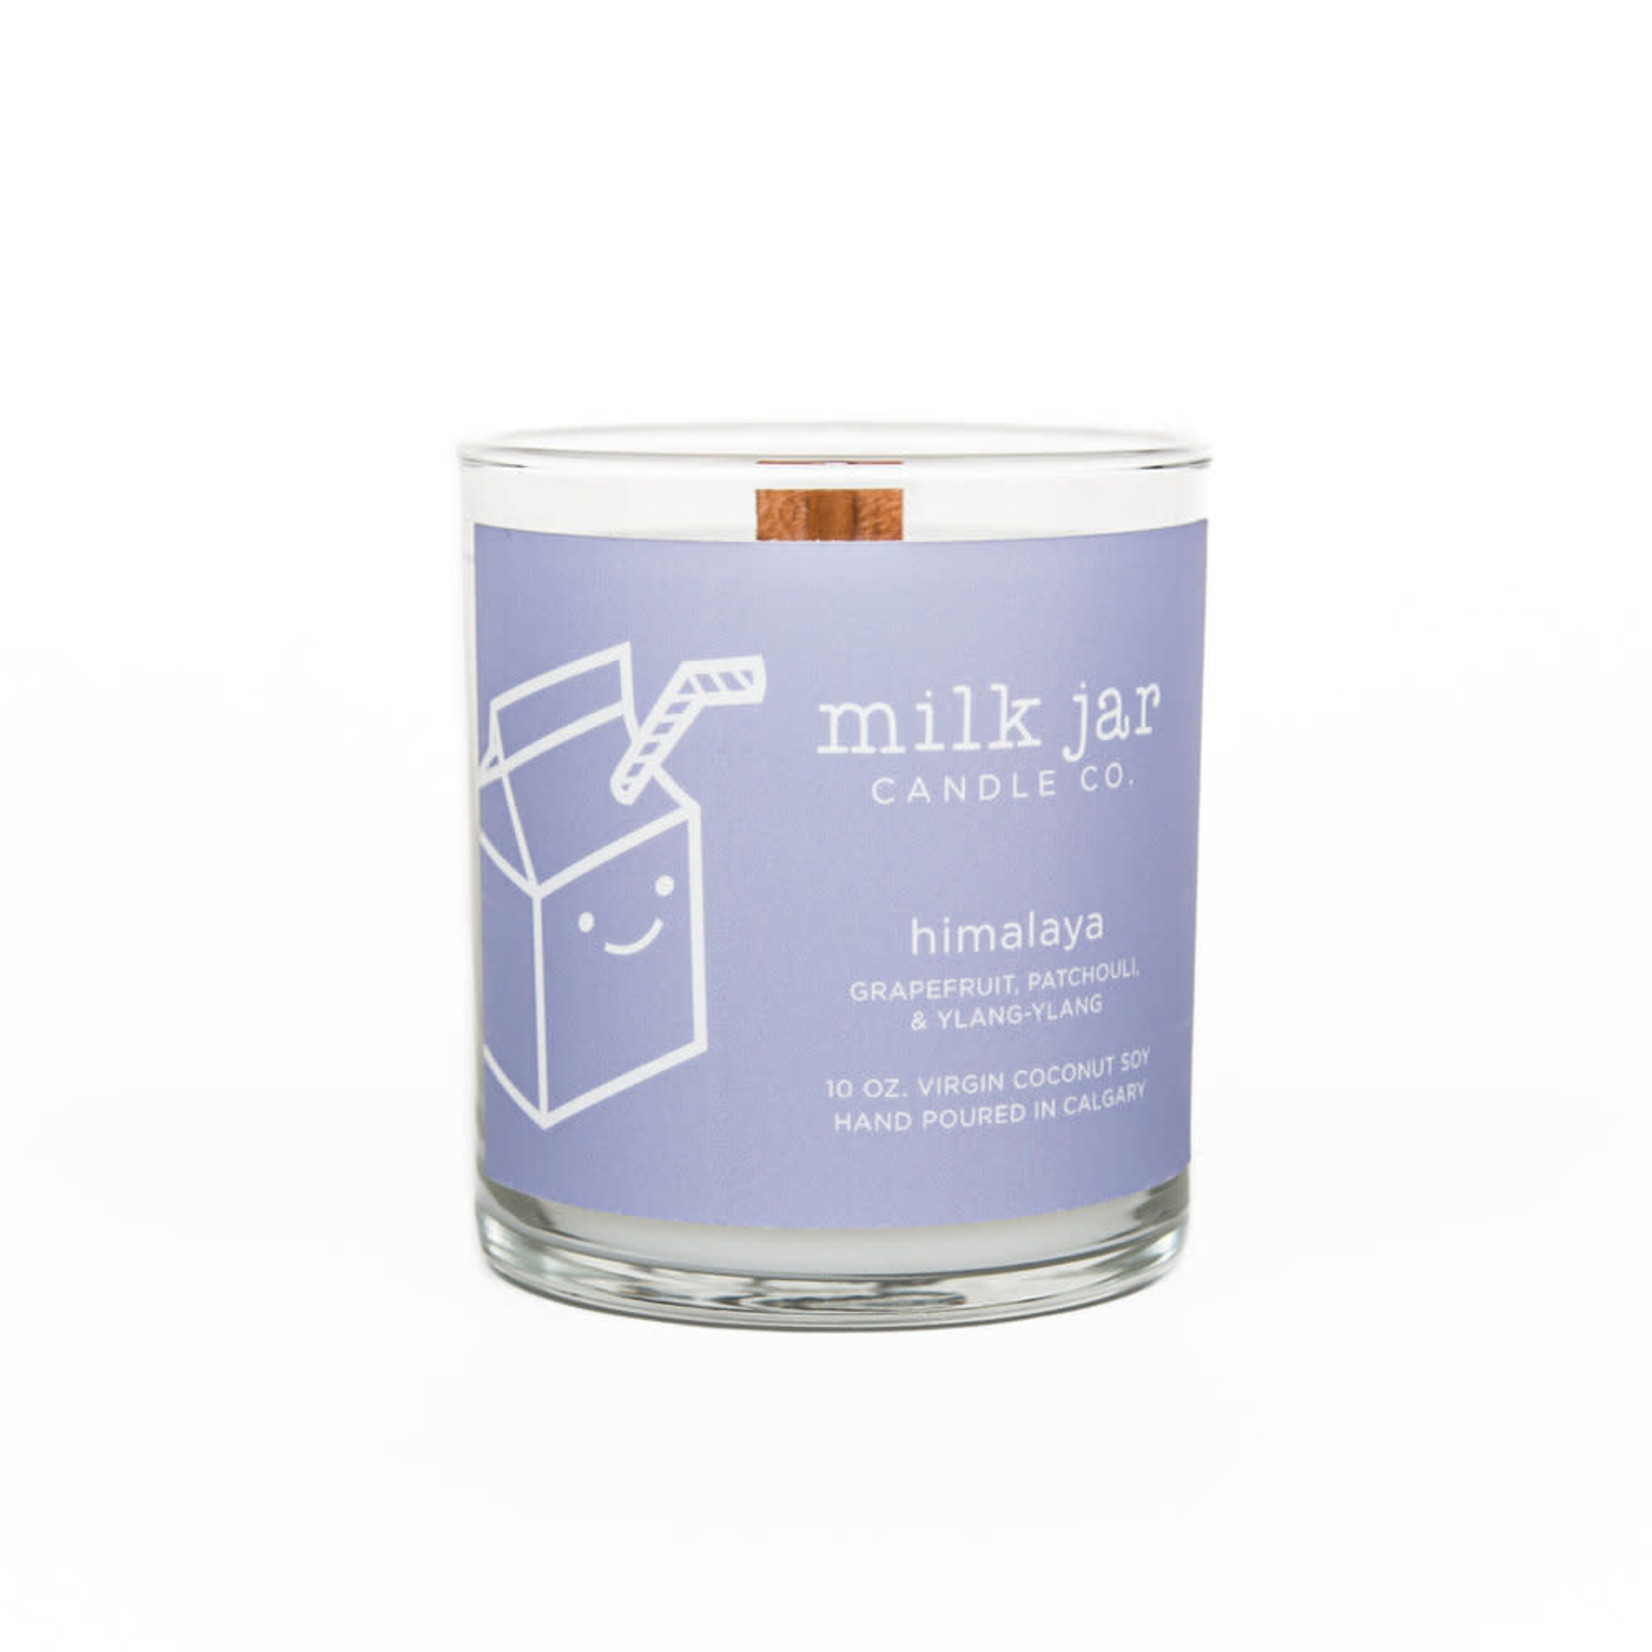 Milk Jar Candles Co. Himalaya Essential Oil Candle